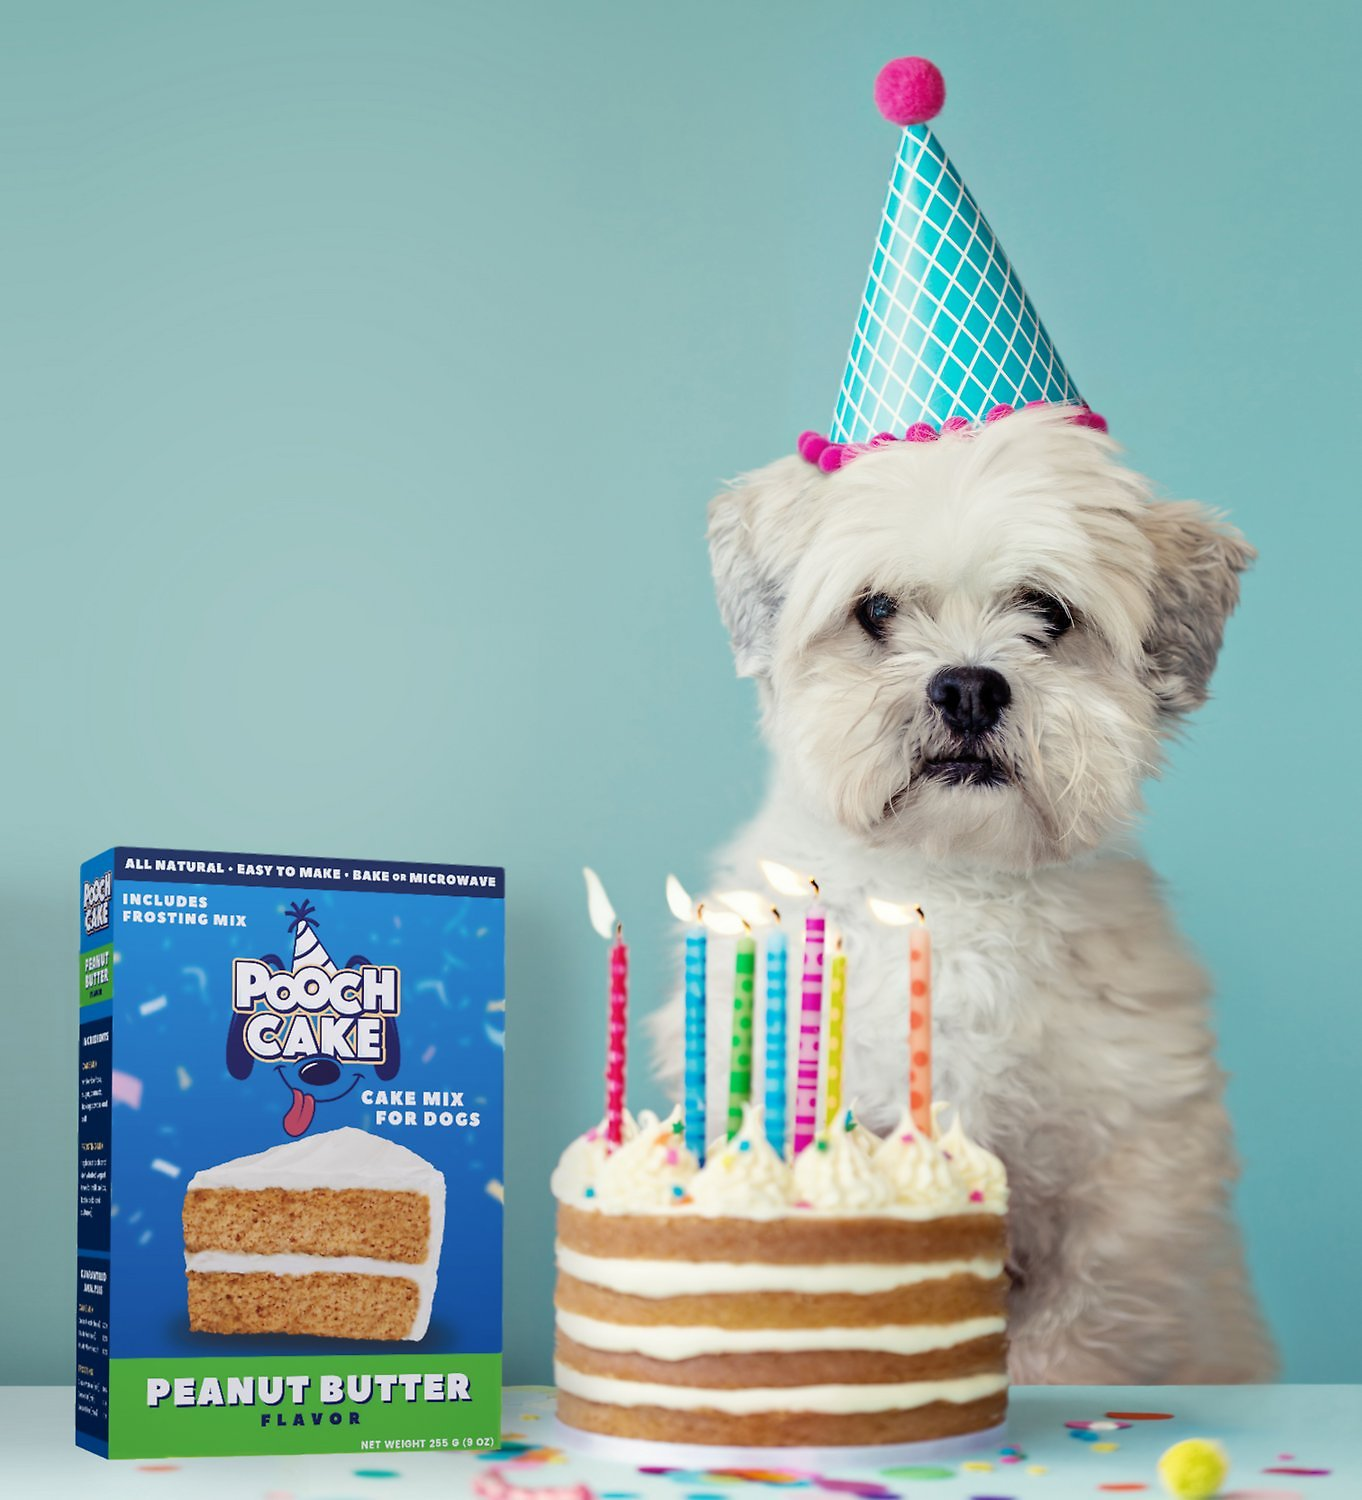 Marvelous Pooch Cake Wheat Free Peanut Butter Cake Mix Frosting Dog Treat Personalised Birthday Cards Paralily Jamesorg